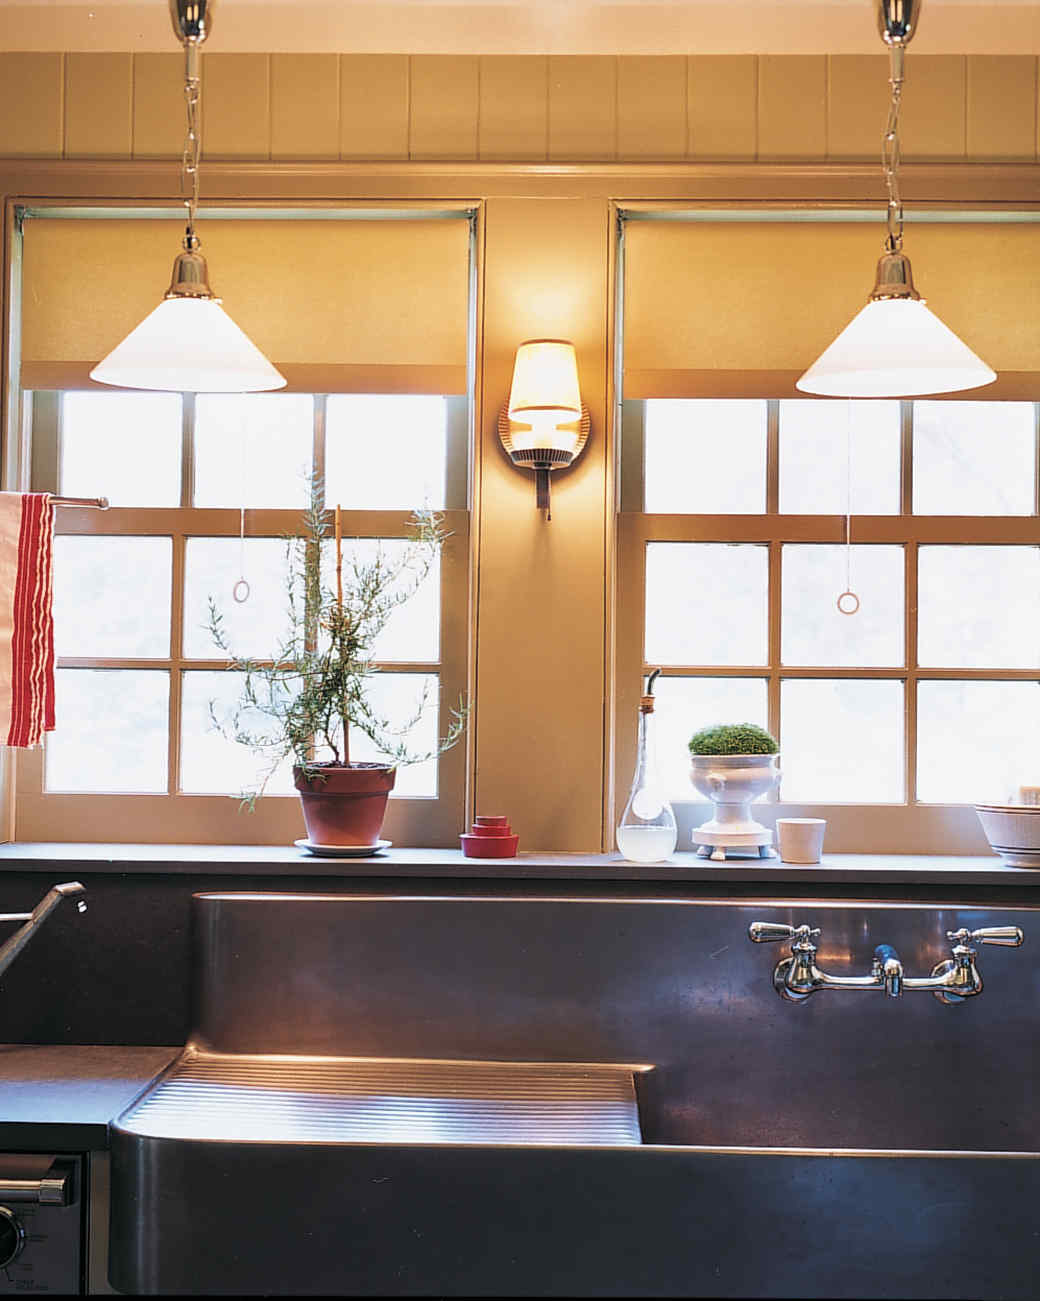 6 Bright Kitchen Lighting Ideas: See How New Fixtures Totally Transformed  These Spaces | Martha Stewart